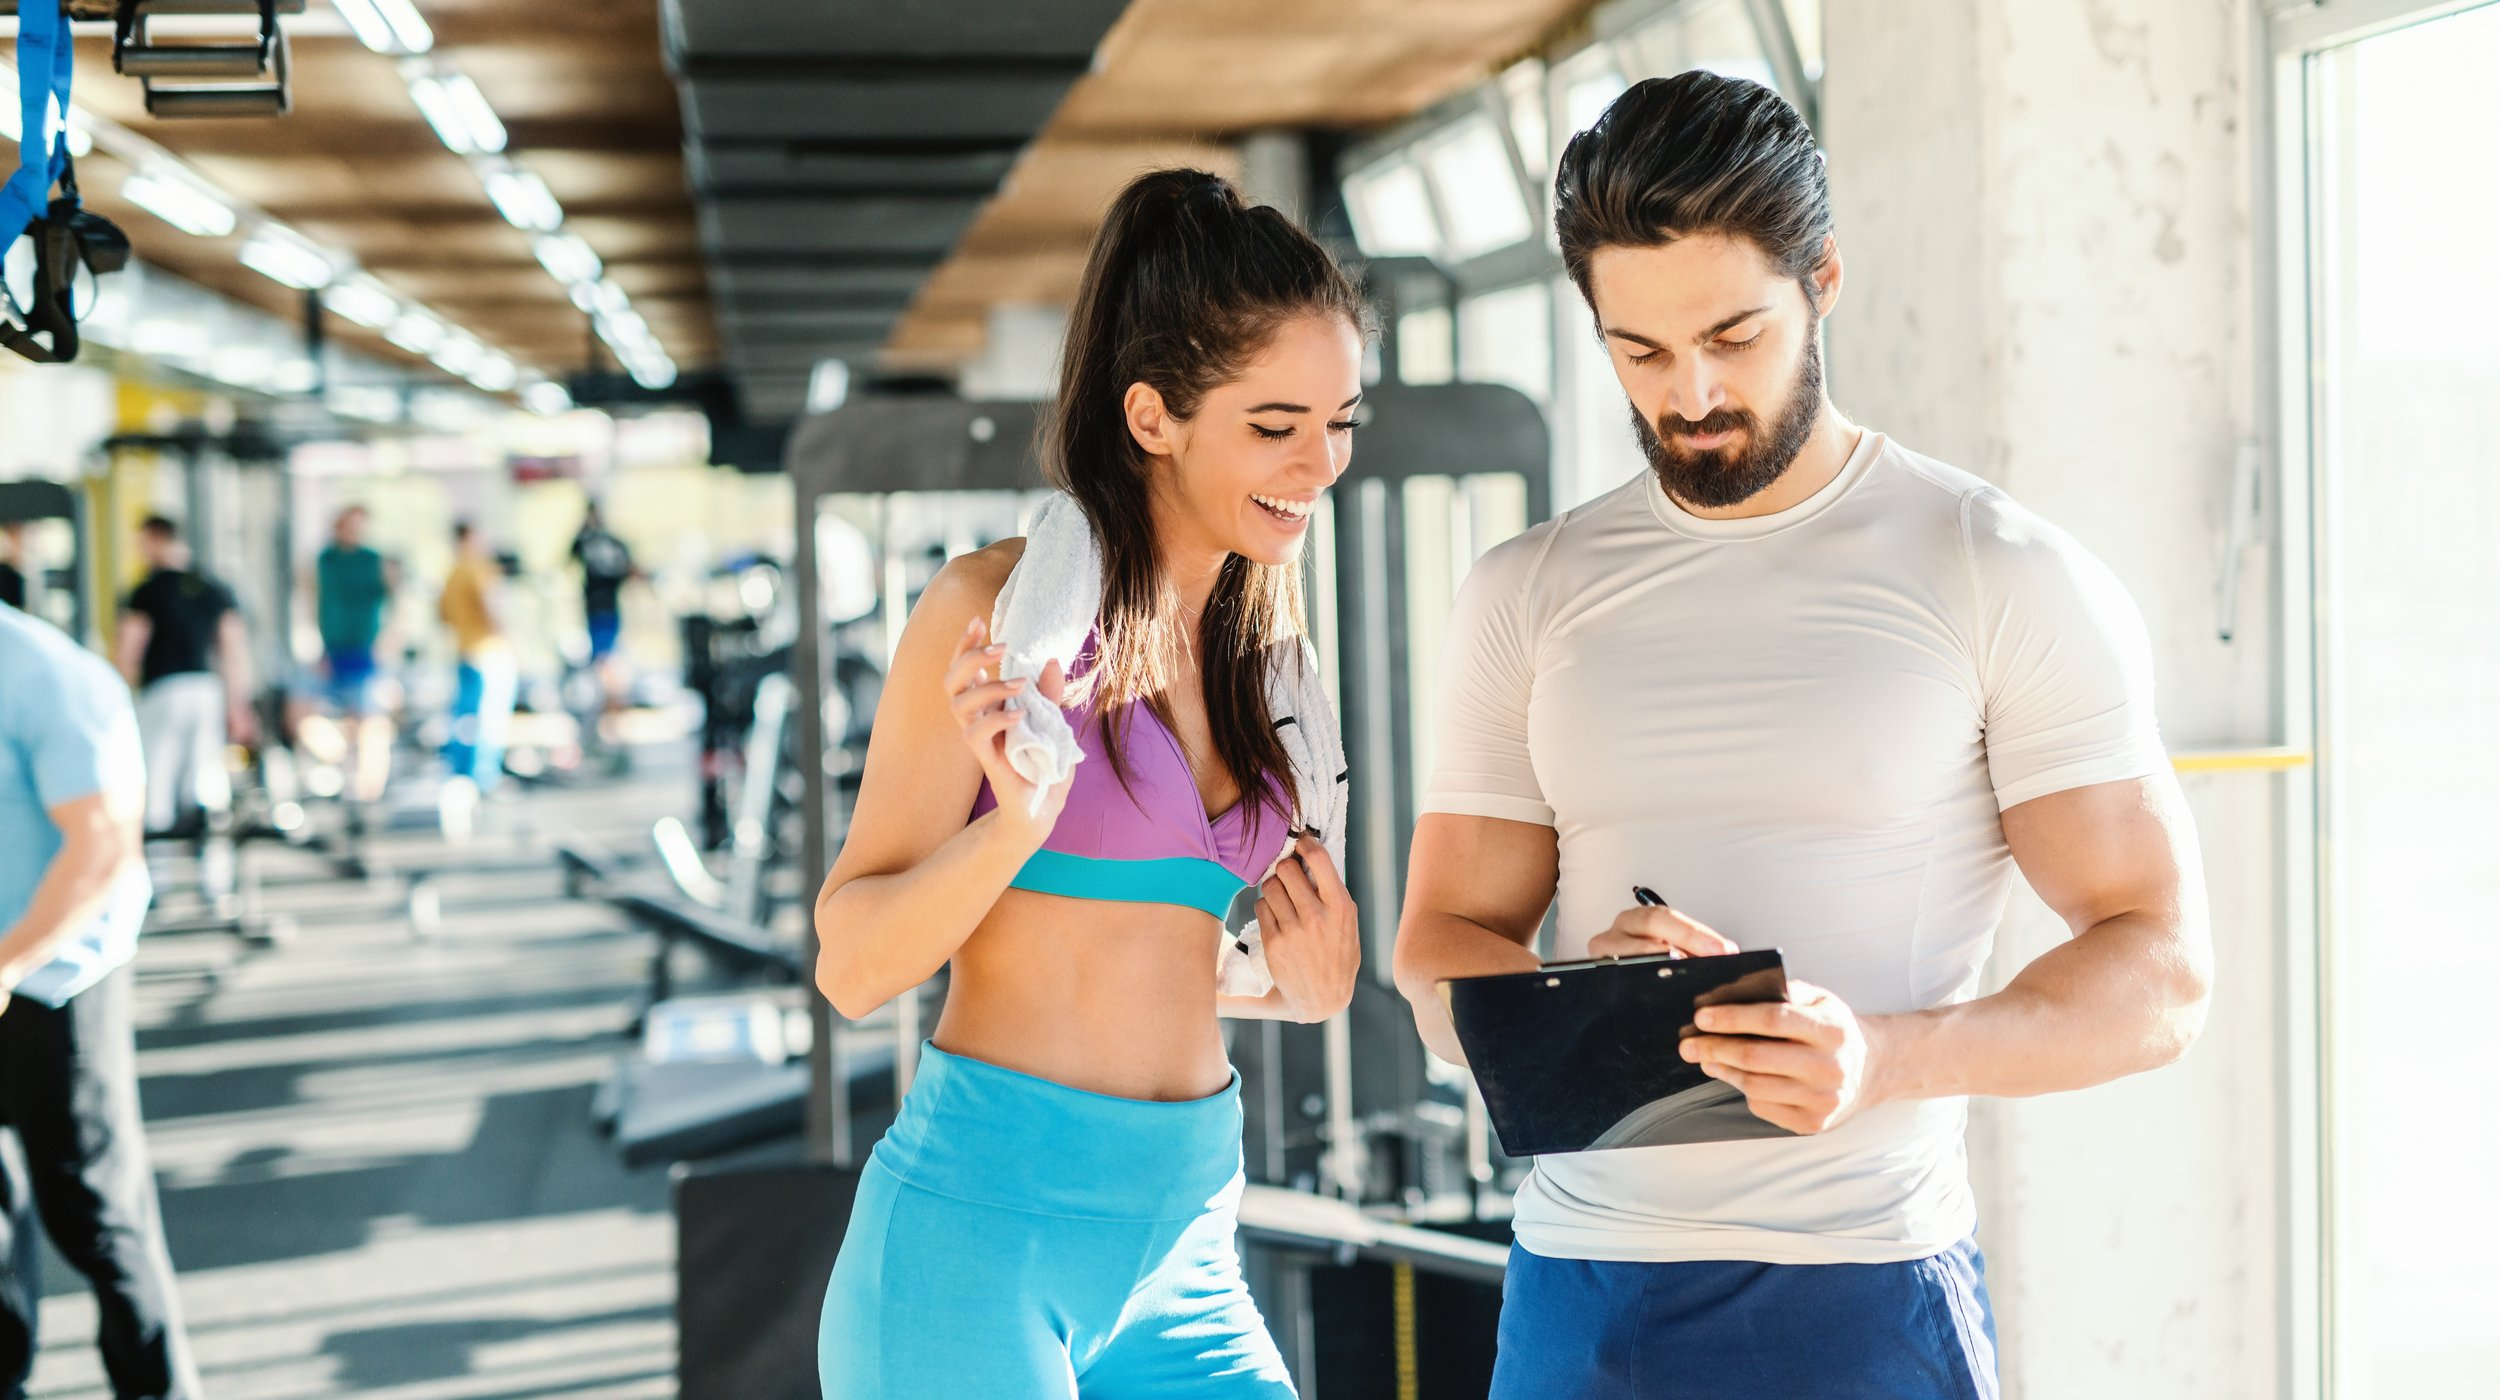 3 Things You Should Know Before You Become a Personal Trainer